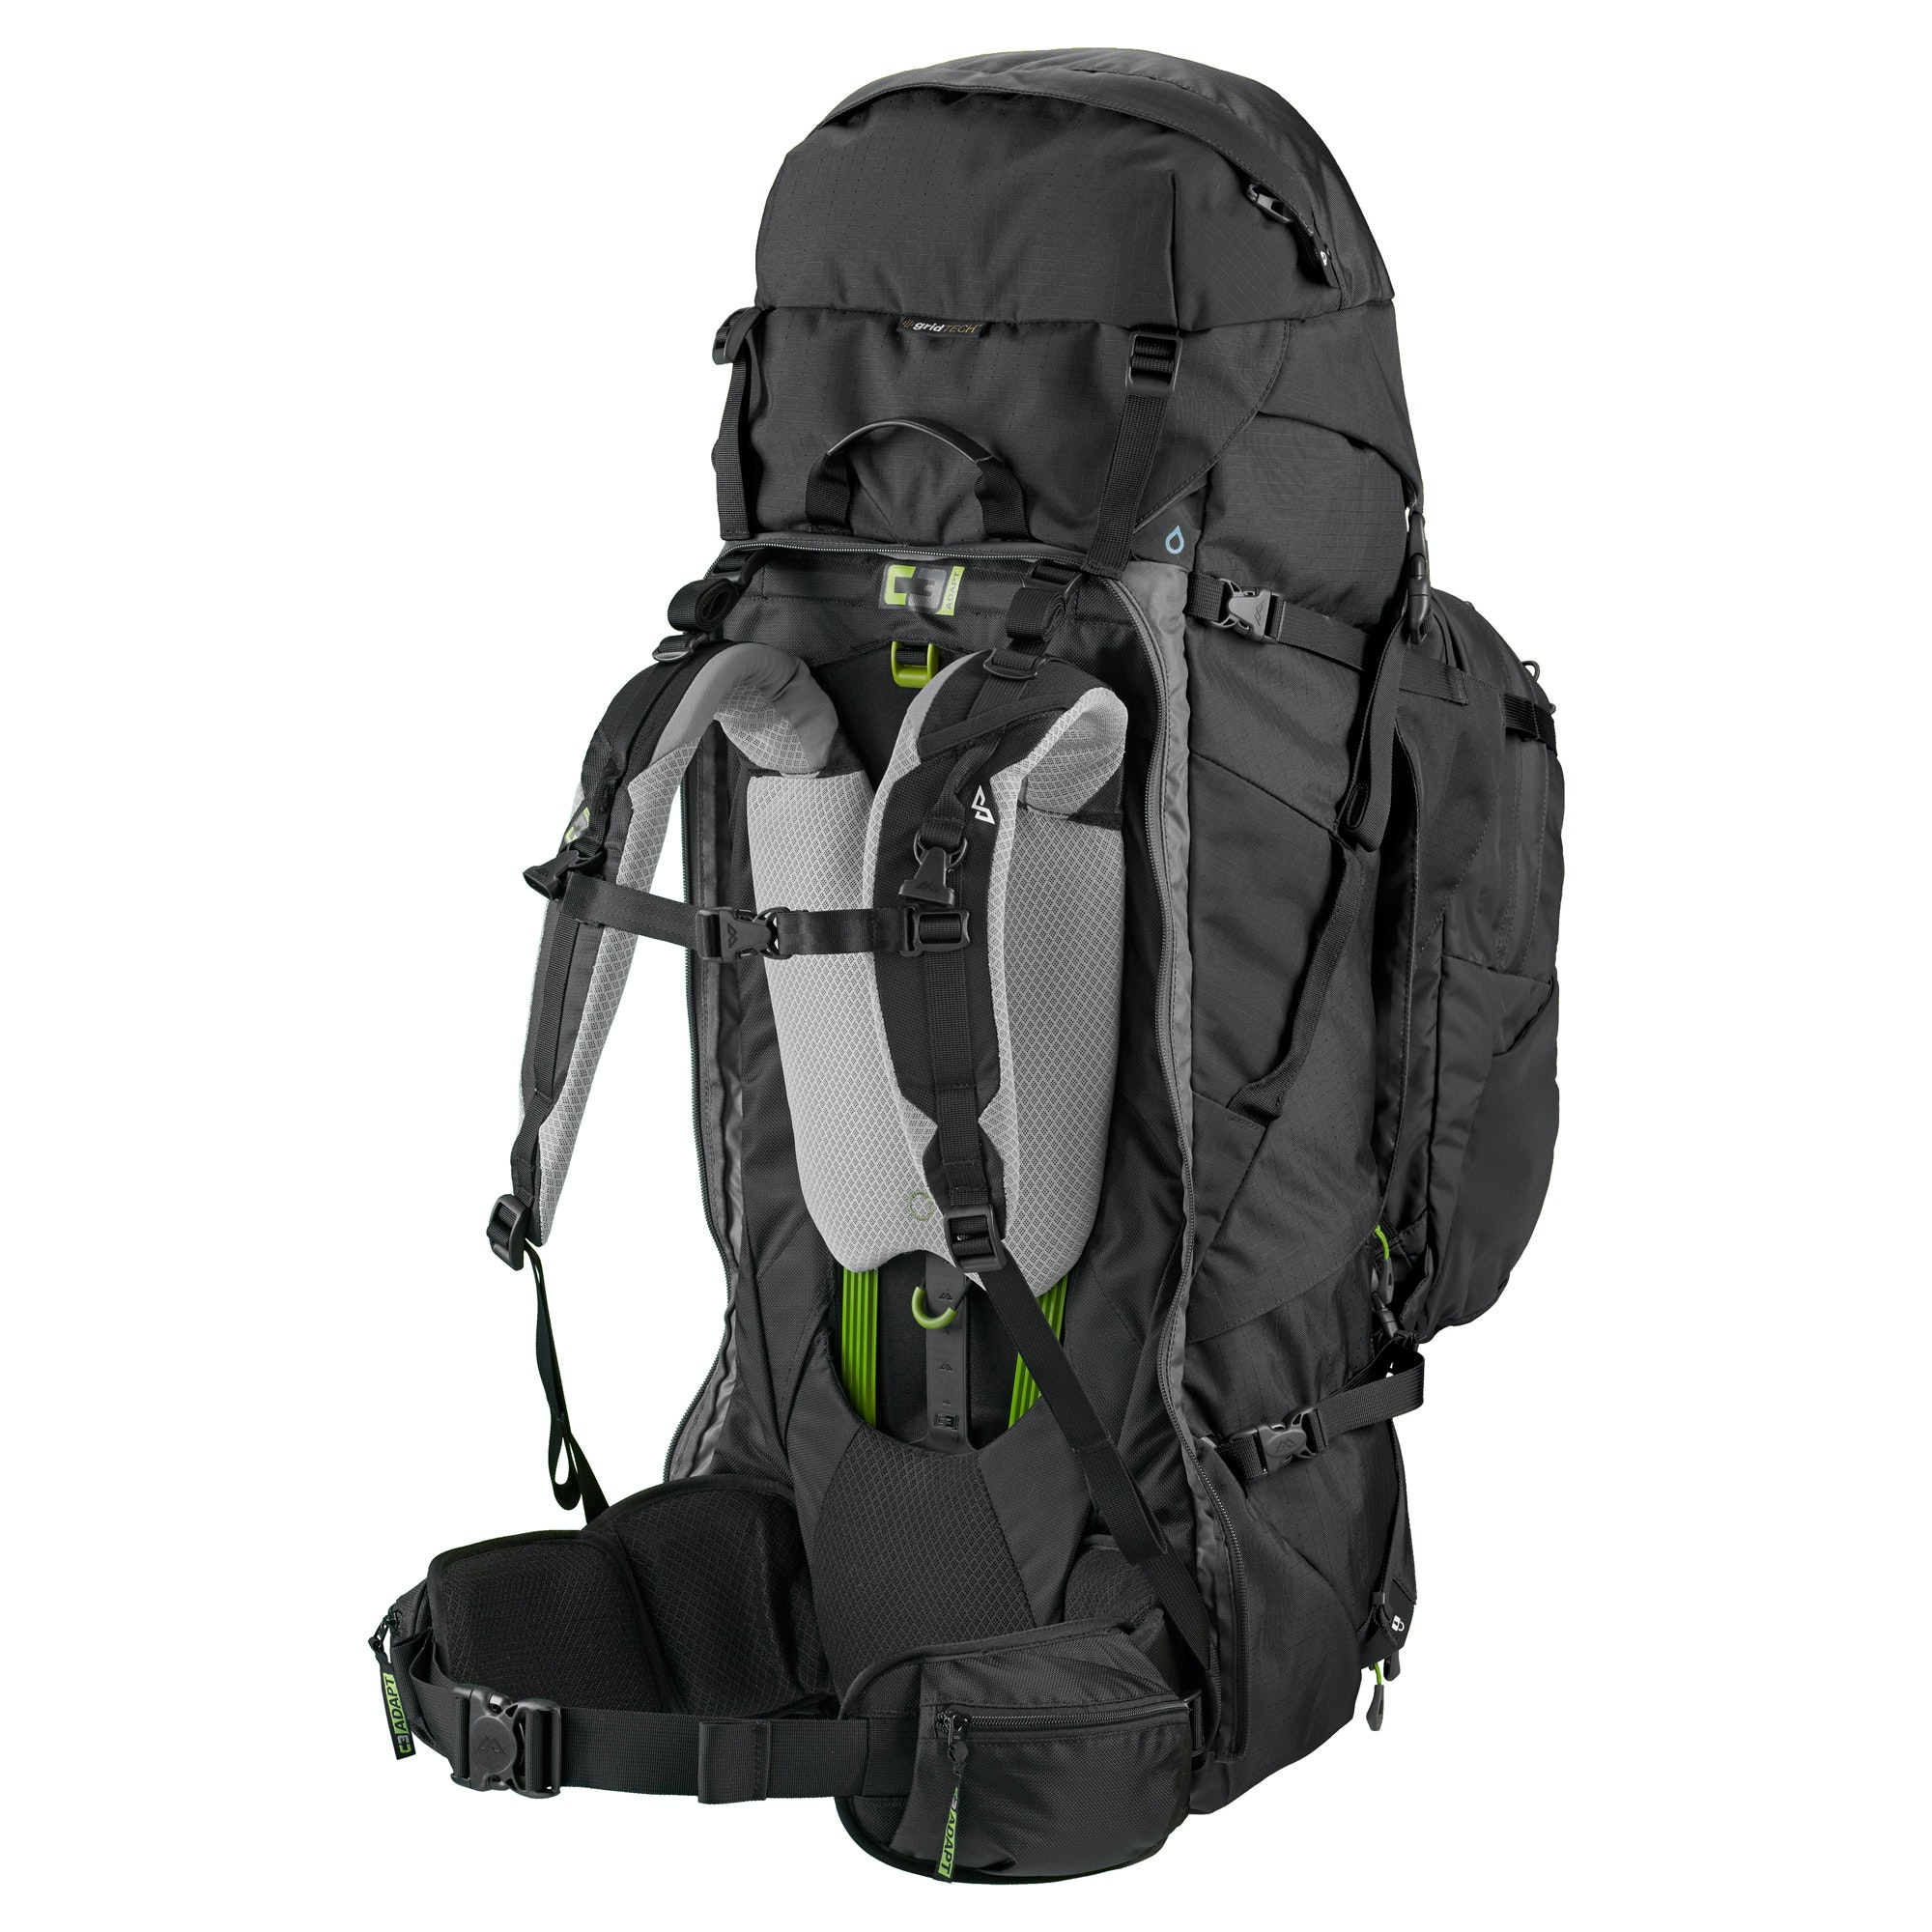 NEW-Kathmandu-Interloper-gridTECH-70L-Hiking-Travel-Backpack-Luggage-with thumbnail 6